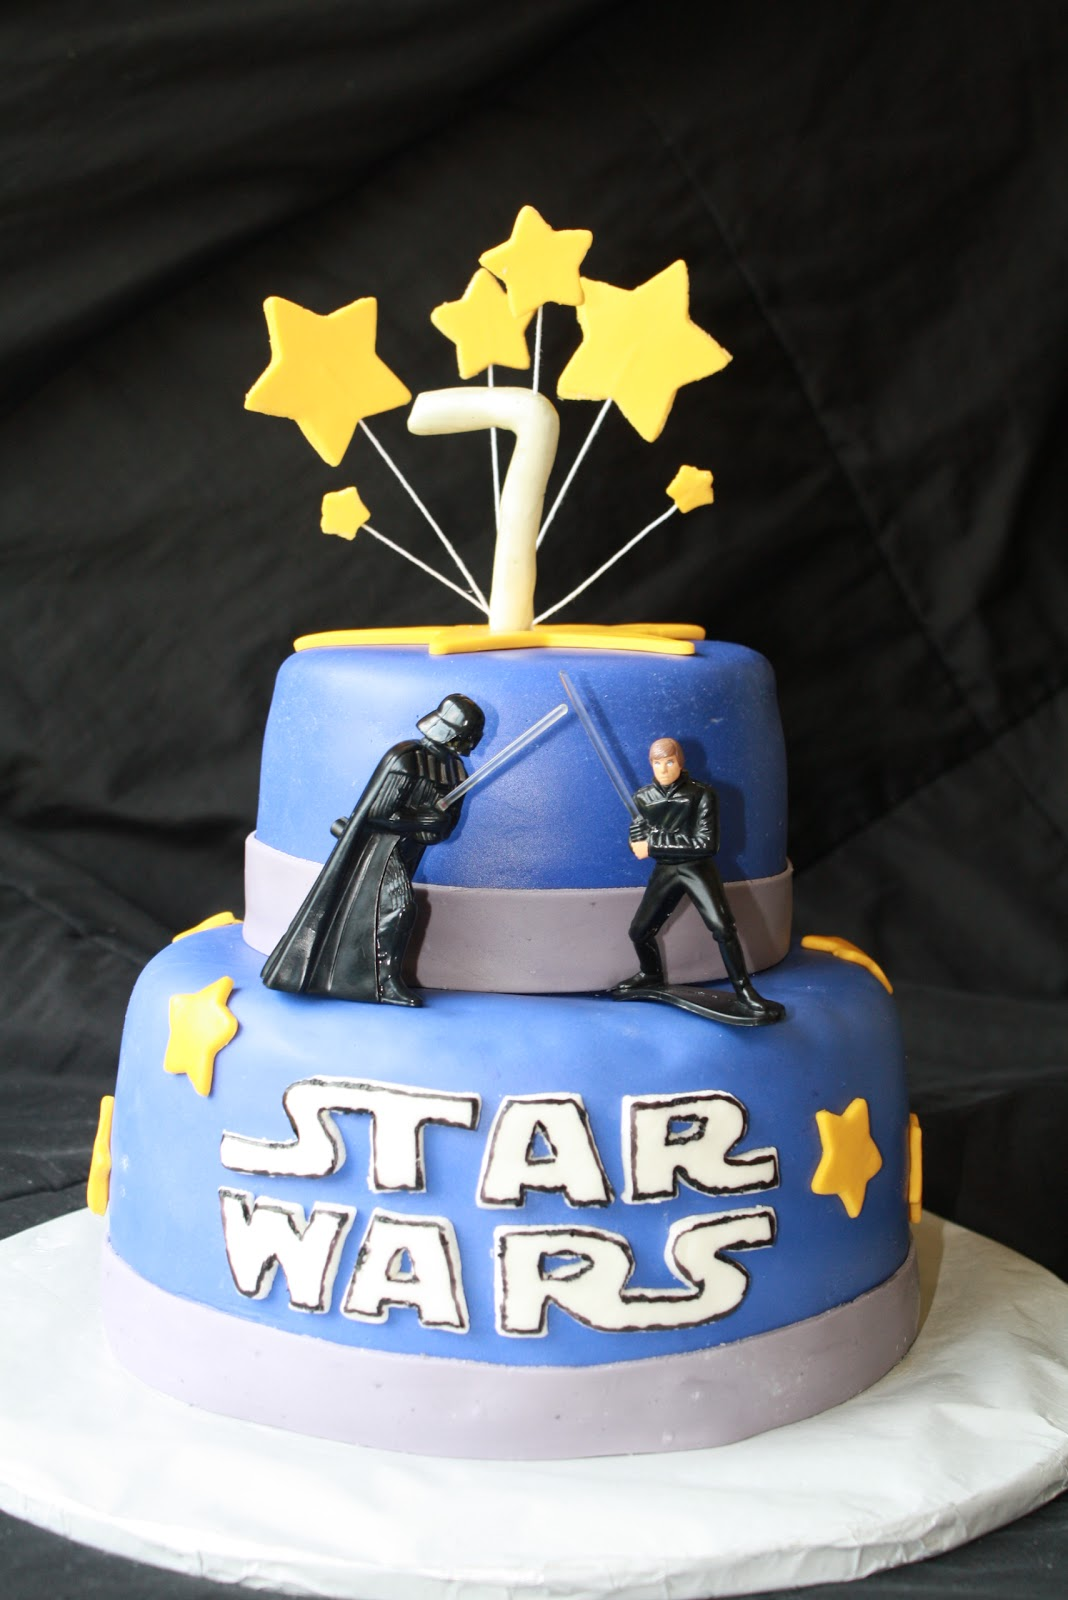 Star Wars Birthday Cake Chocolate Recipe